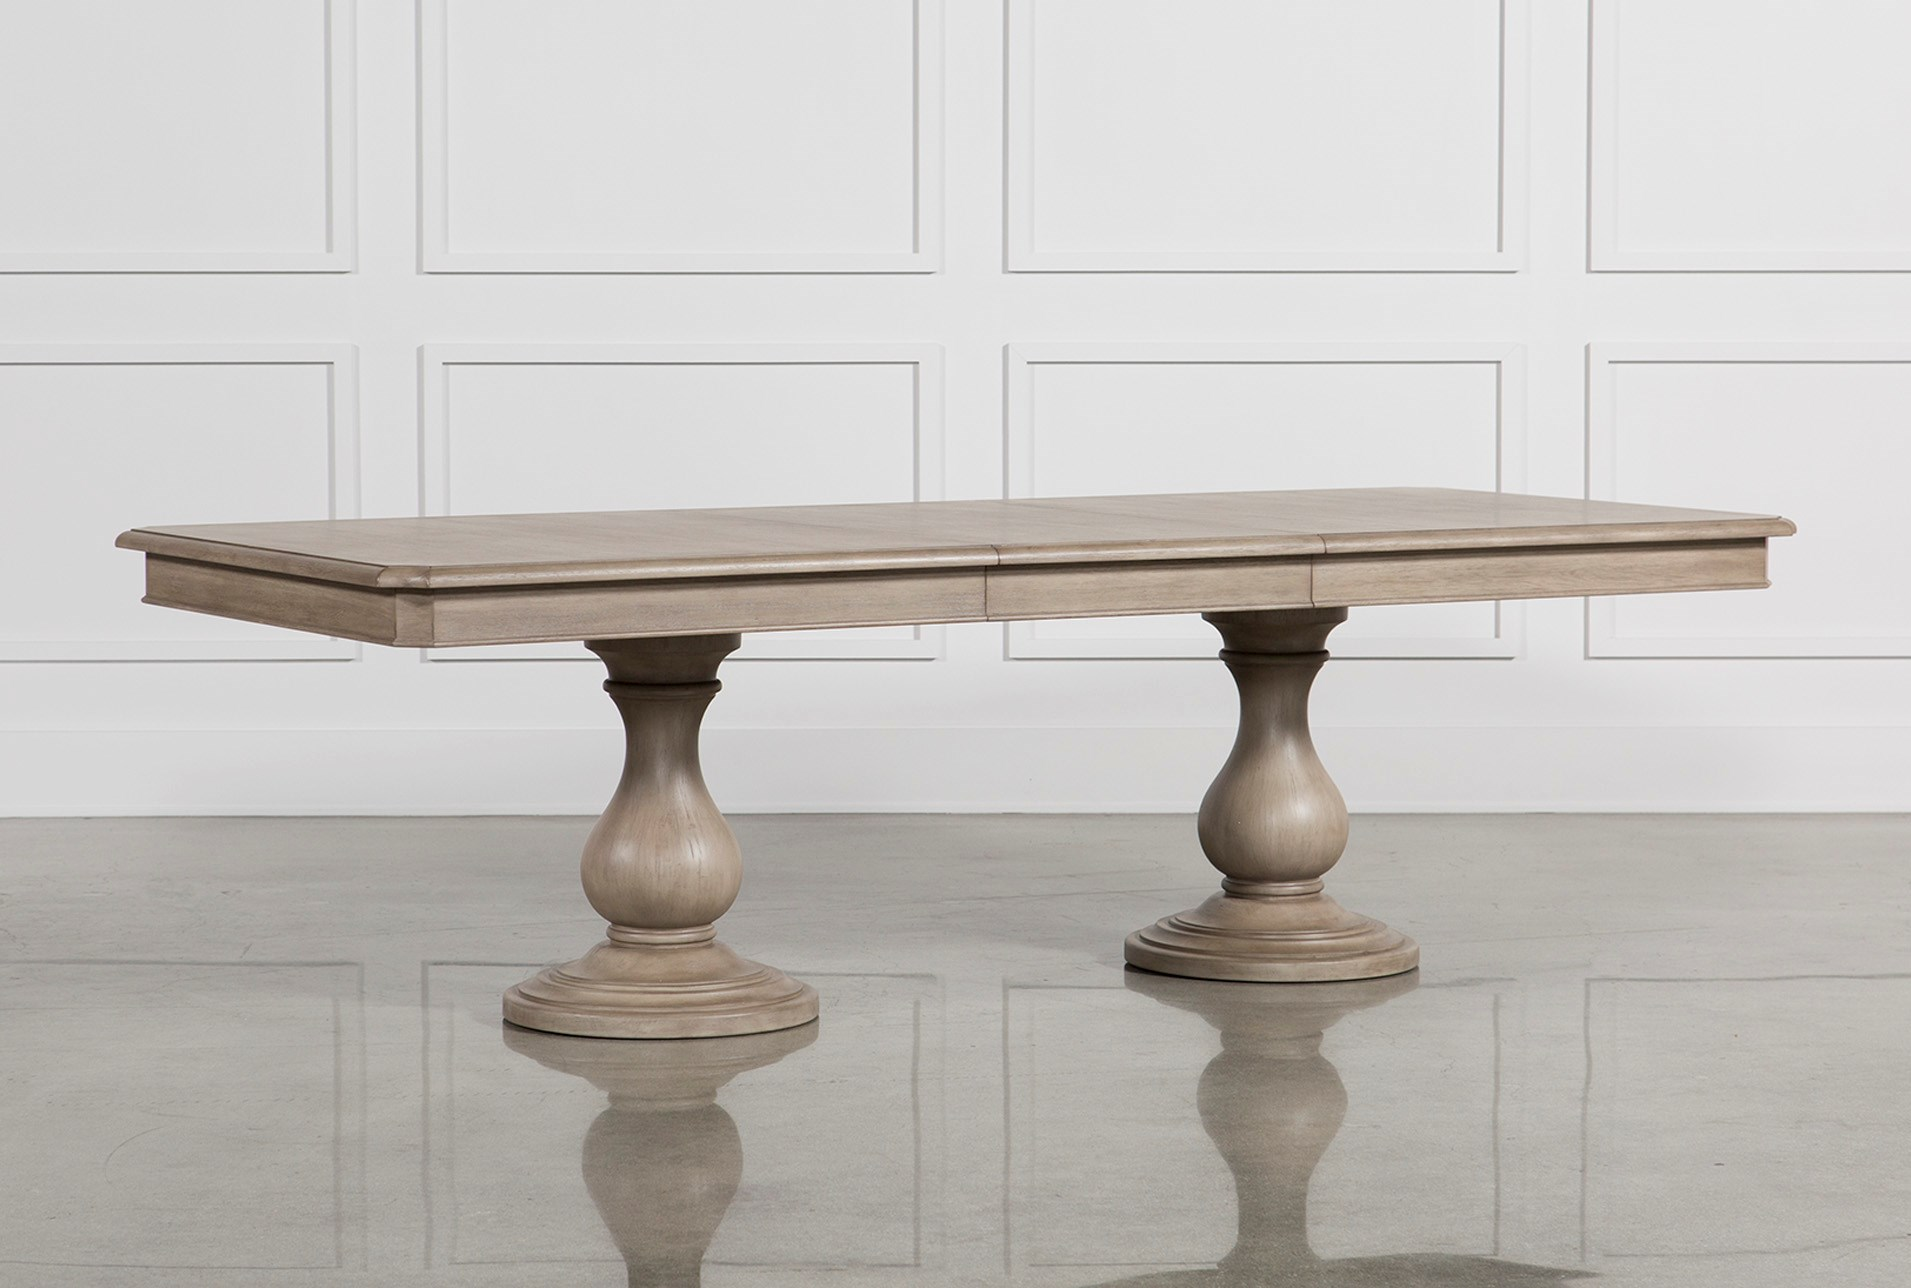 Caira extension pedestal dining table qty 1 has been successfully added to your cart